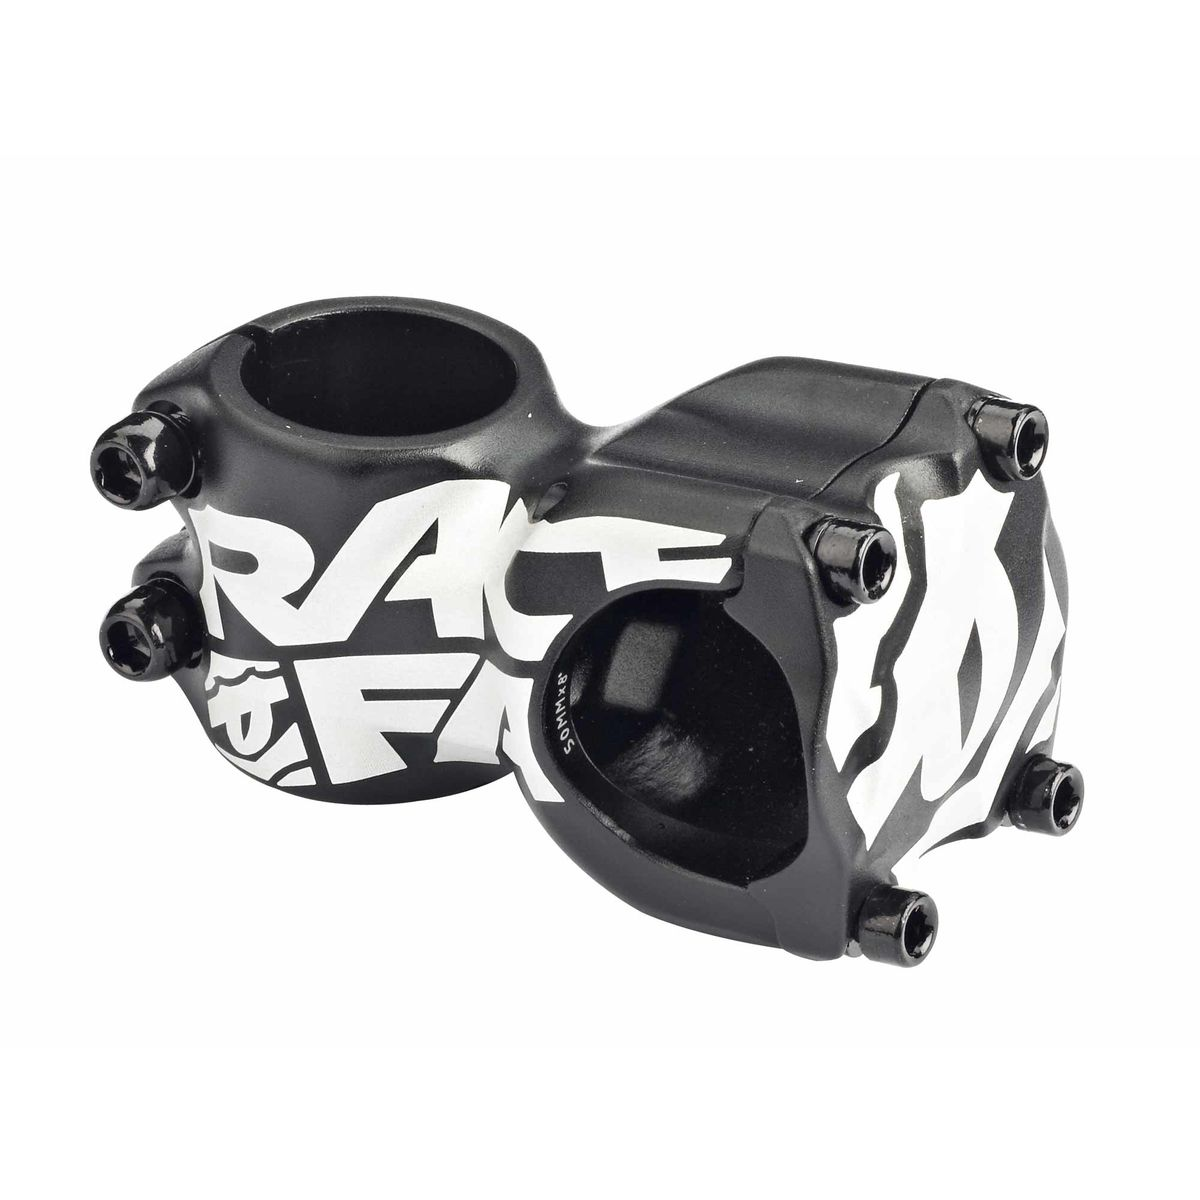 RACEFACE Chester stem